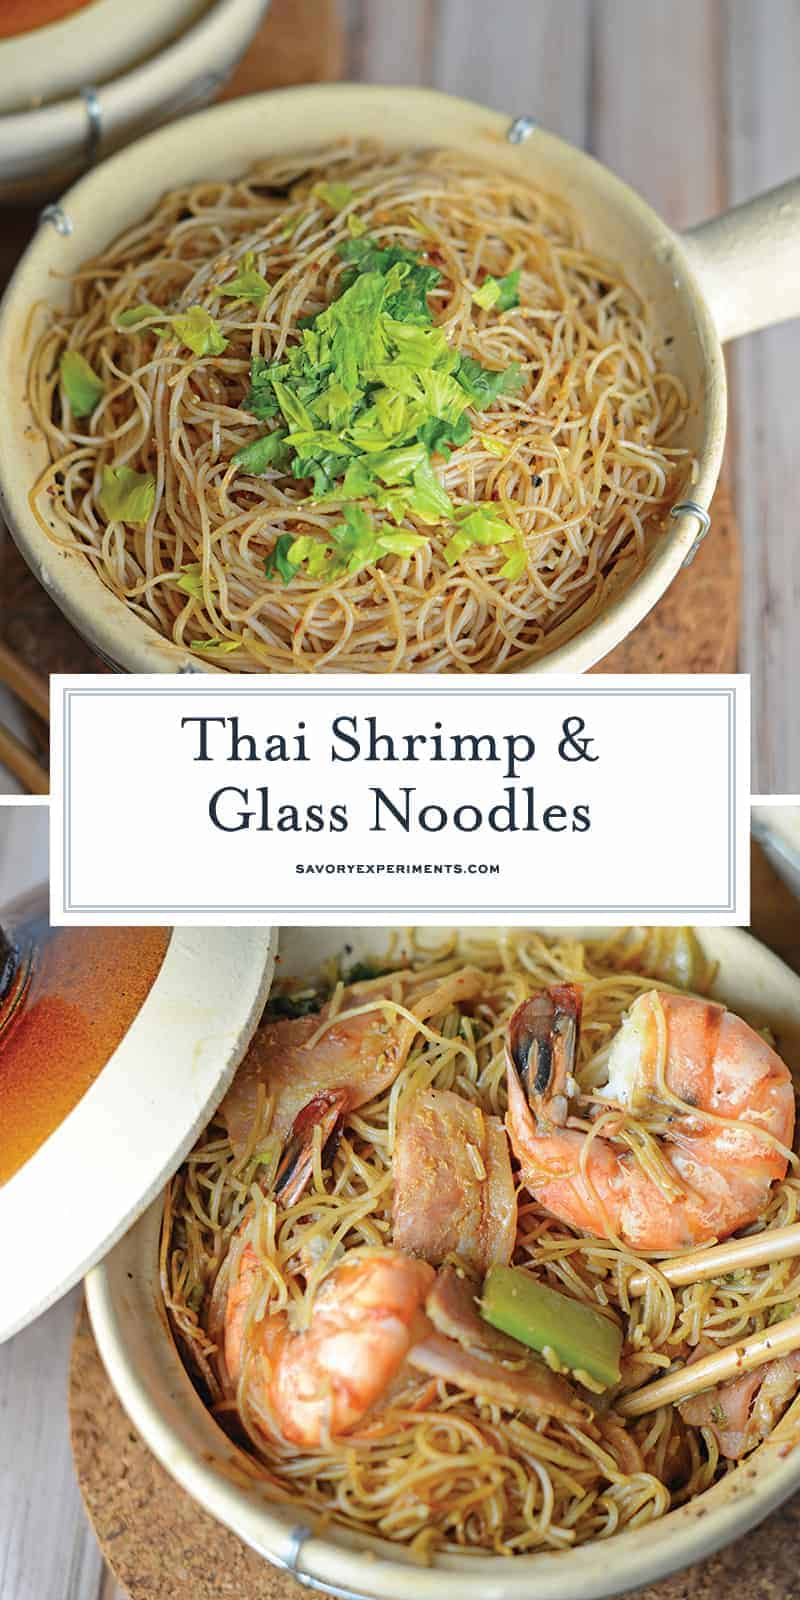 Thai Shrimp with Glass Noodles is a one pot Thai dish with shrimp steamed in layers of bacon, aromatics and glass noodles. #glassnoodles #thaishrimp www.savoryexperiments.com